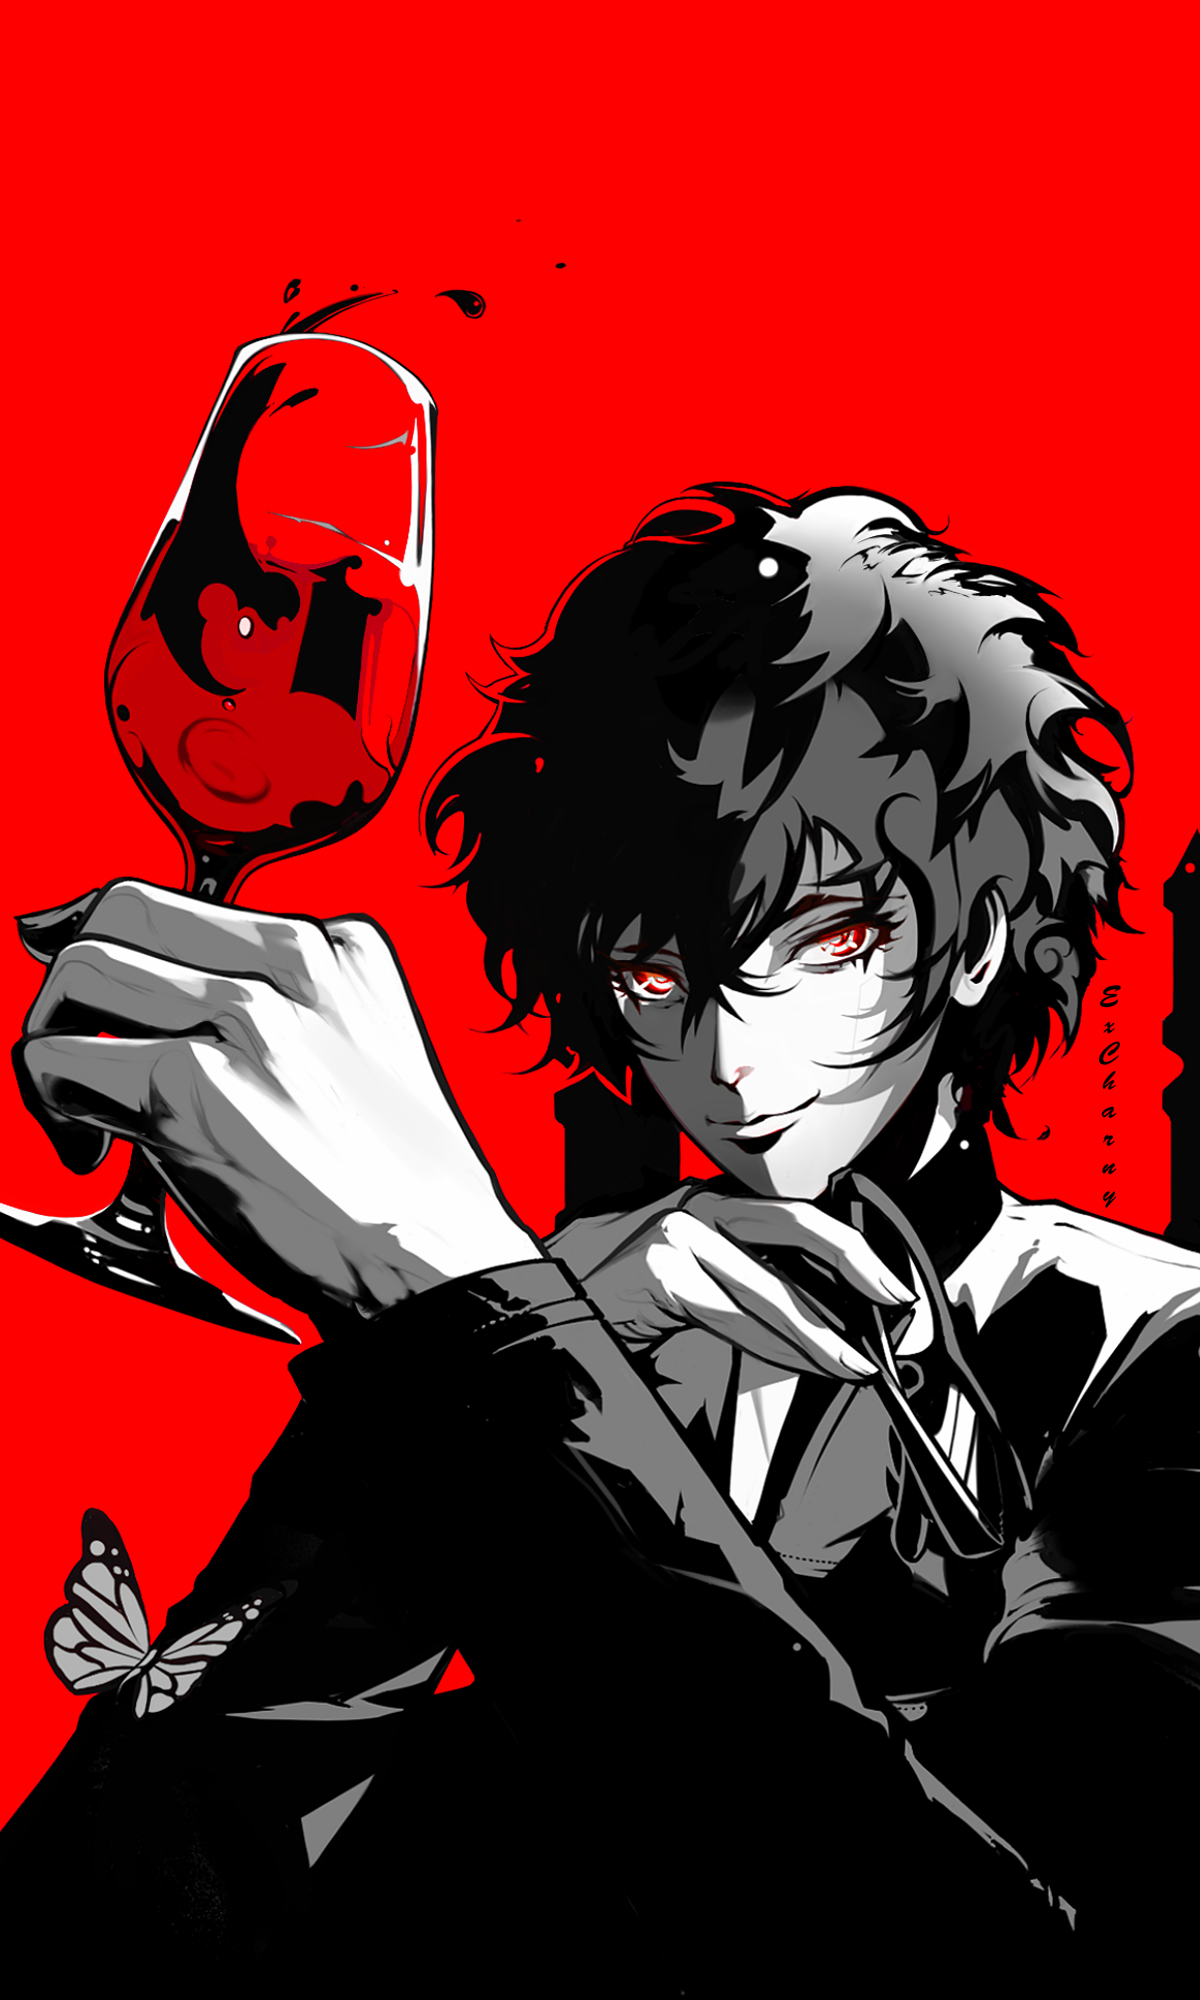 Sit Back and Relax [ Persona 5 Royal fanart ]